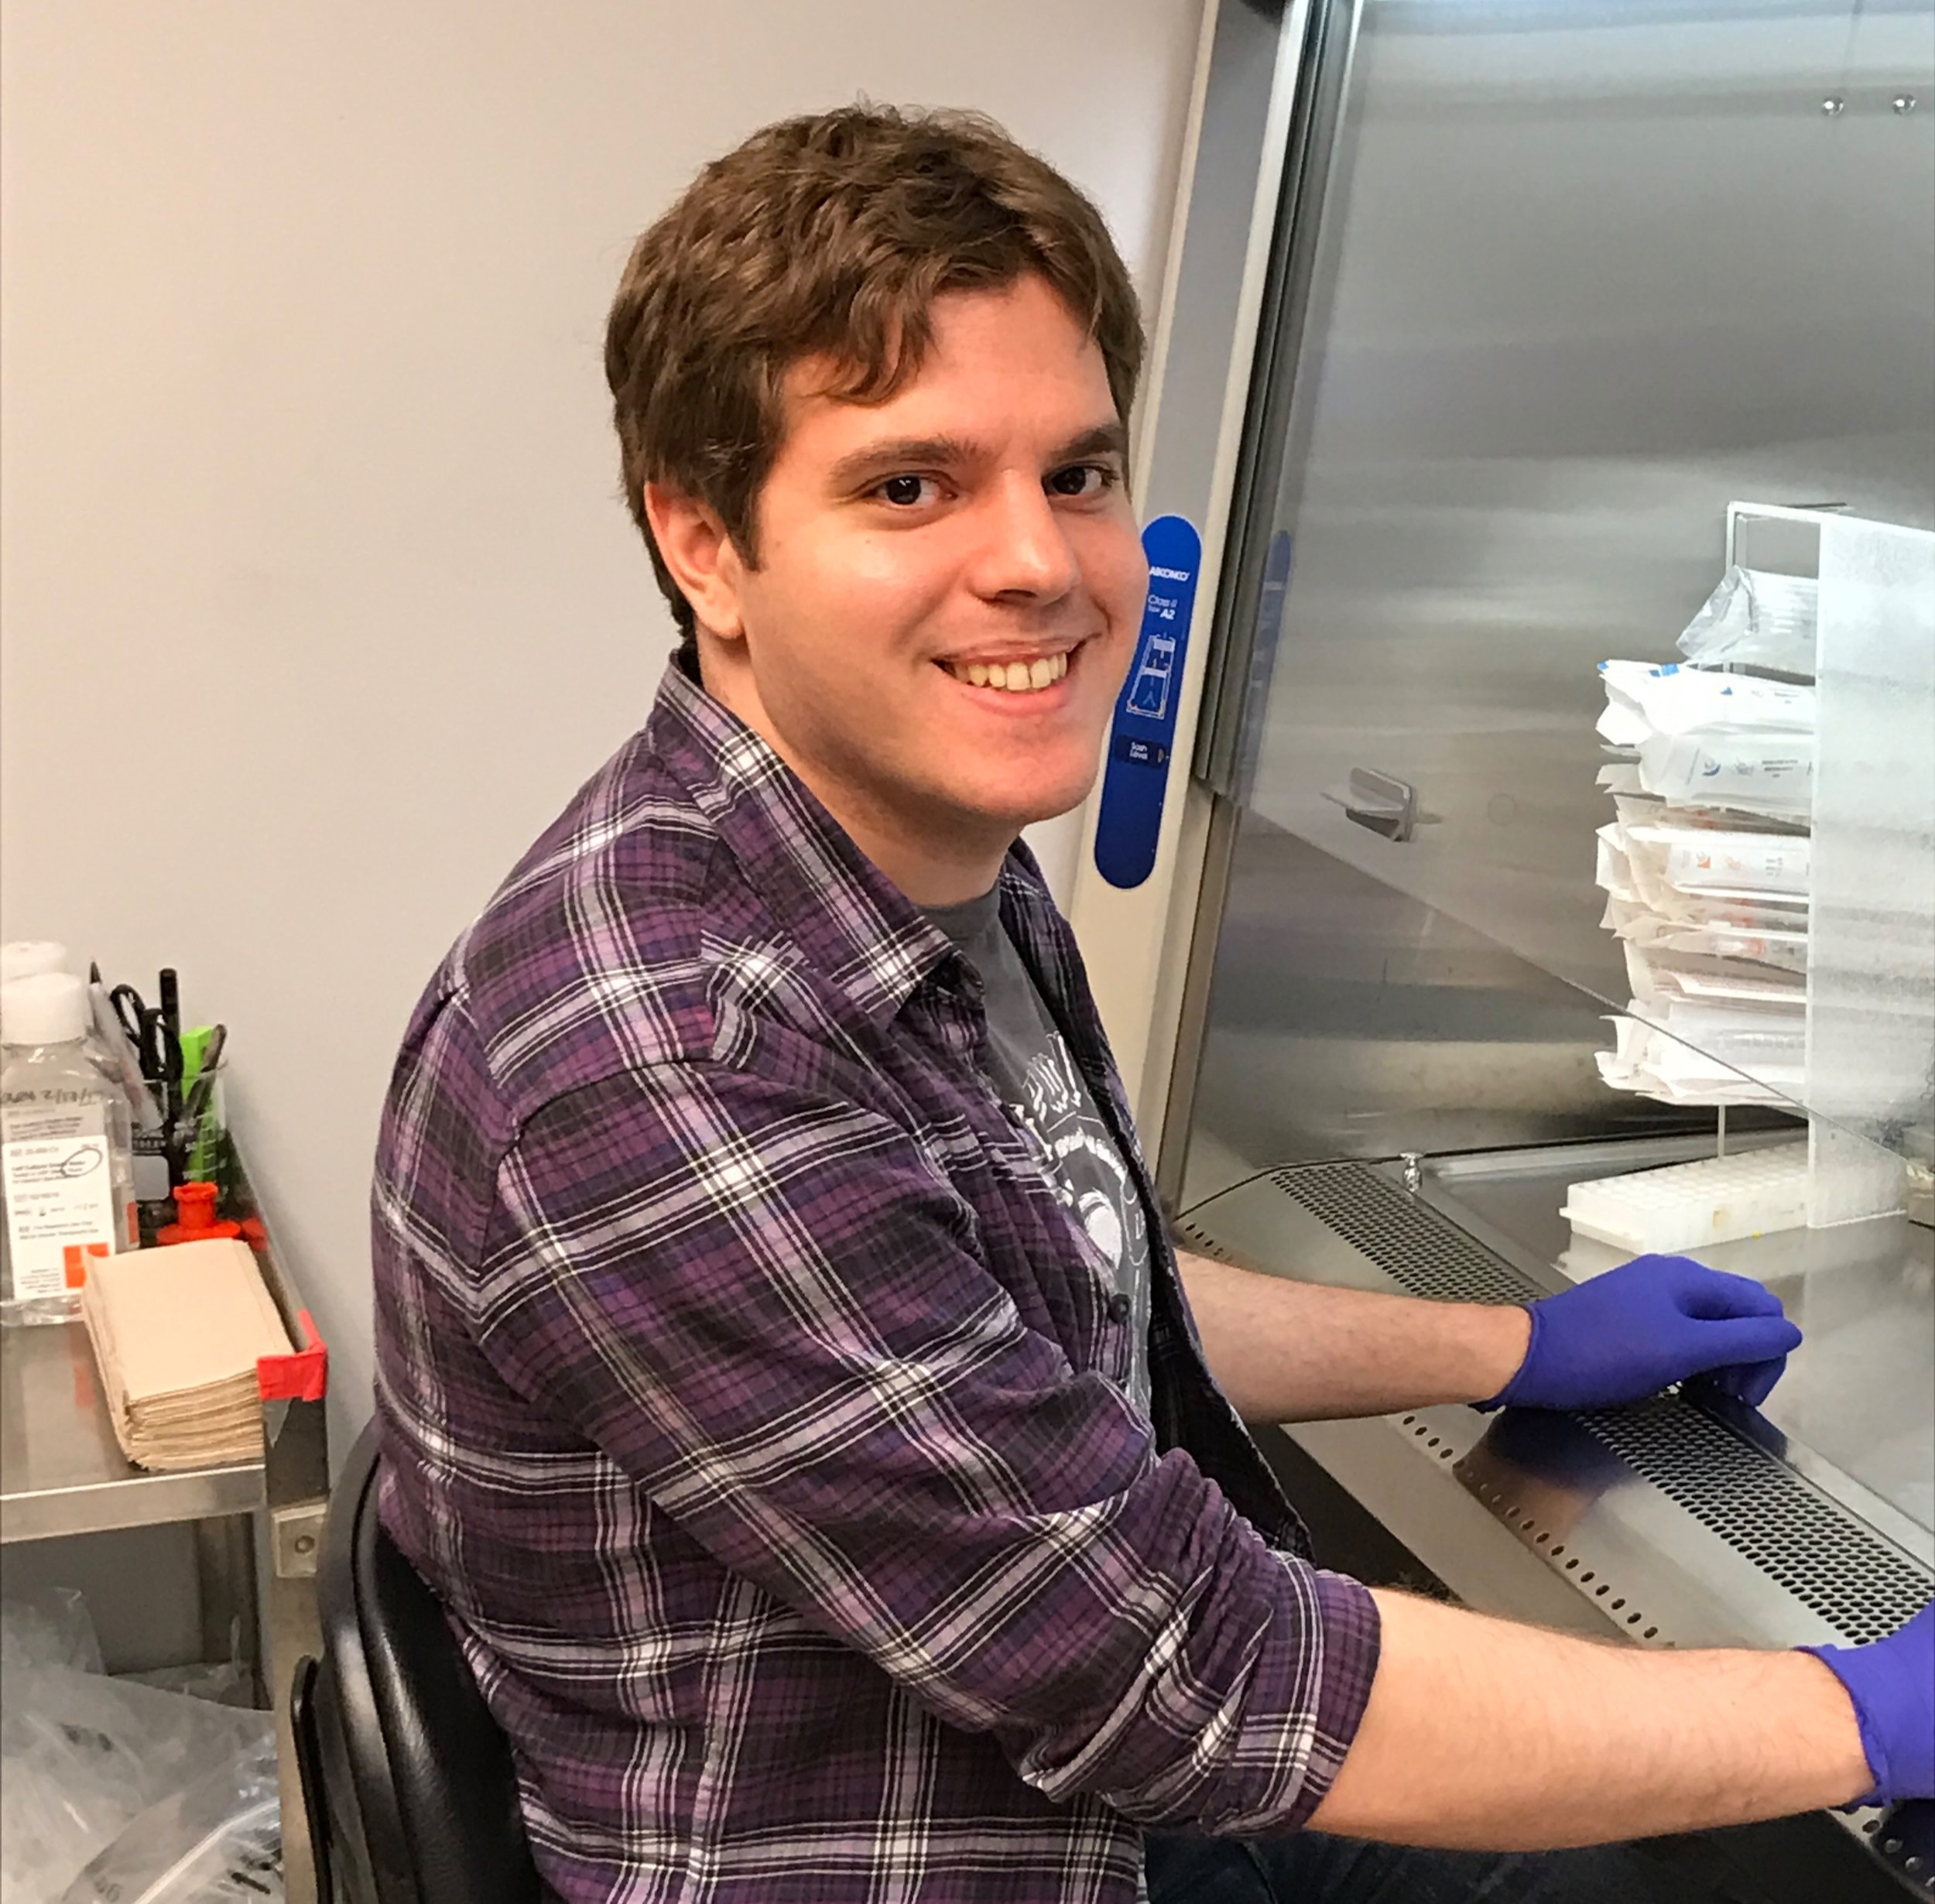 Nate Jacobs - PHD STUDENTNate is in the Population Biology, Ecology and Evolution graduate program and is working to understand the implications of incomplete viral genomes for influenza virus evolution.